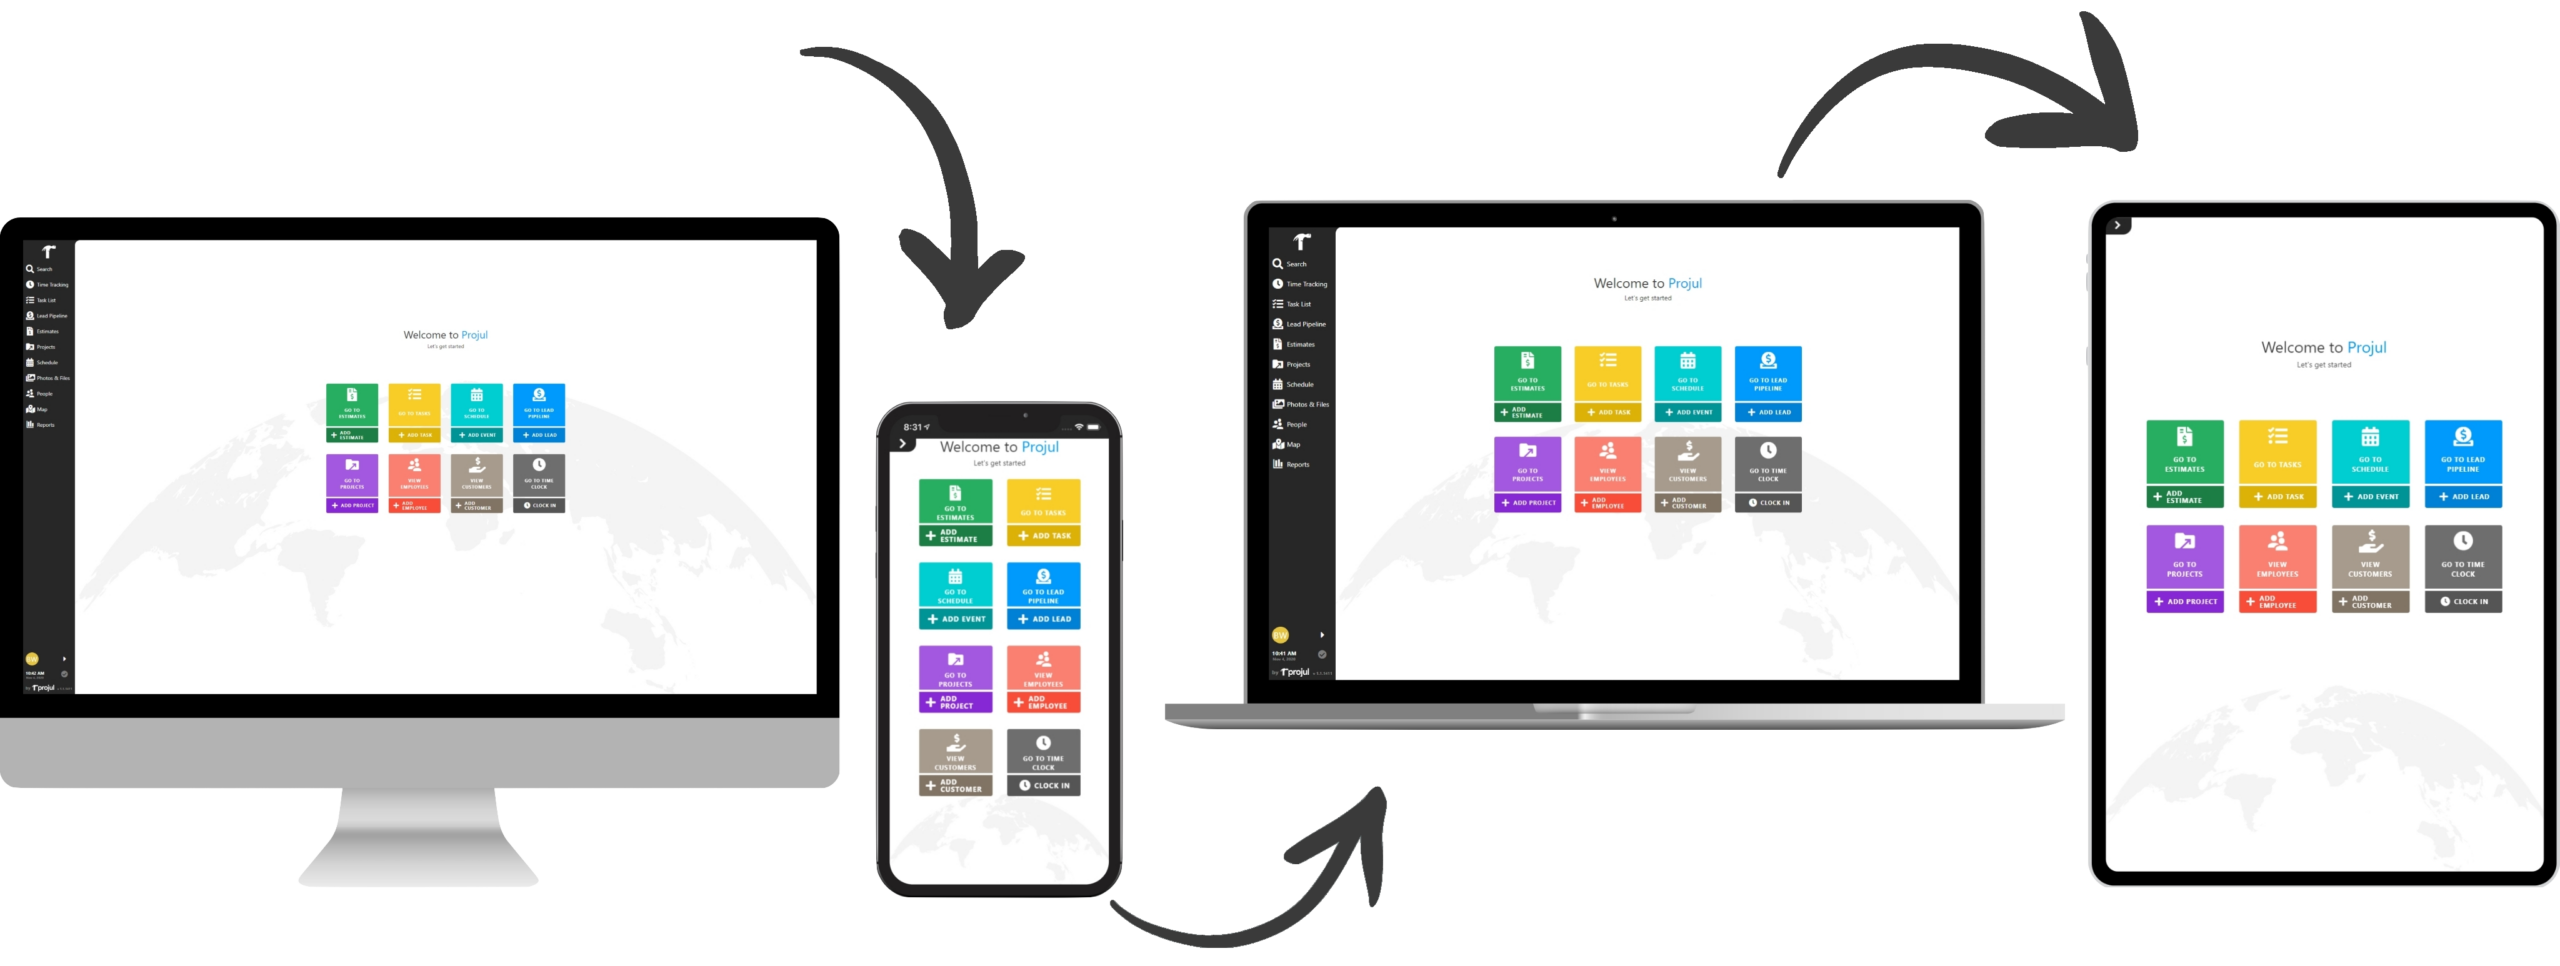 Projul on all of your desktop and mobile devices.